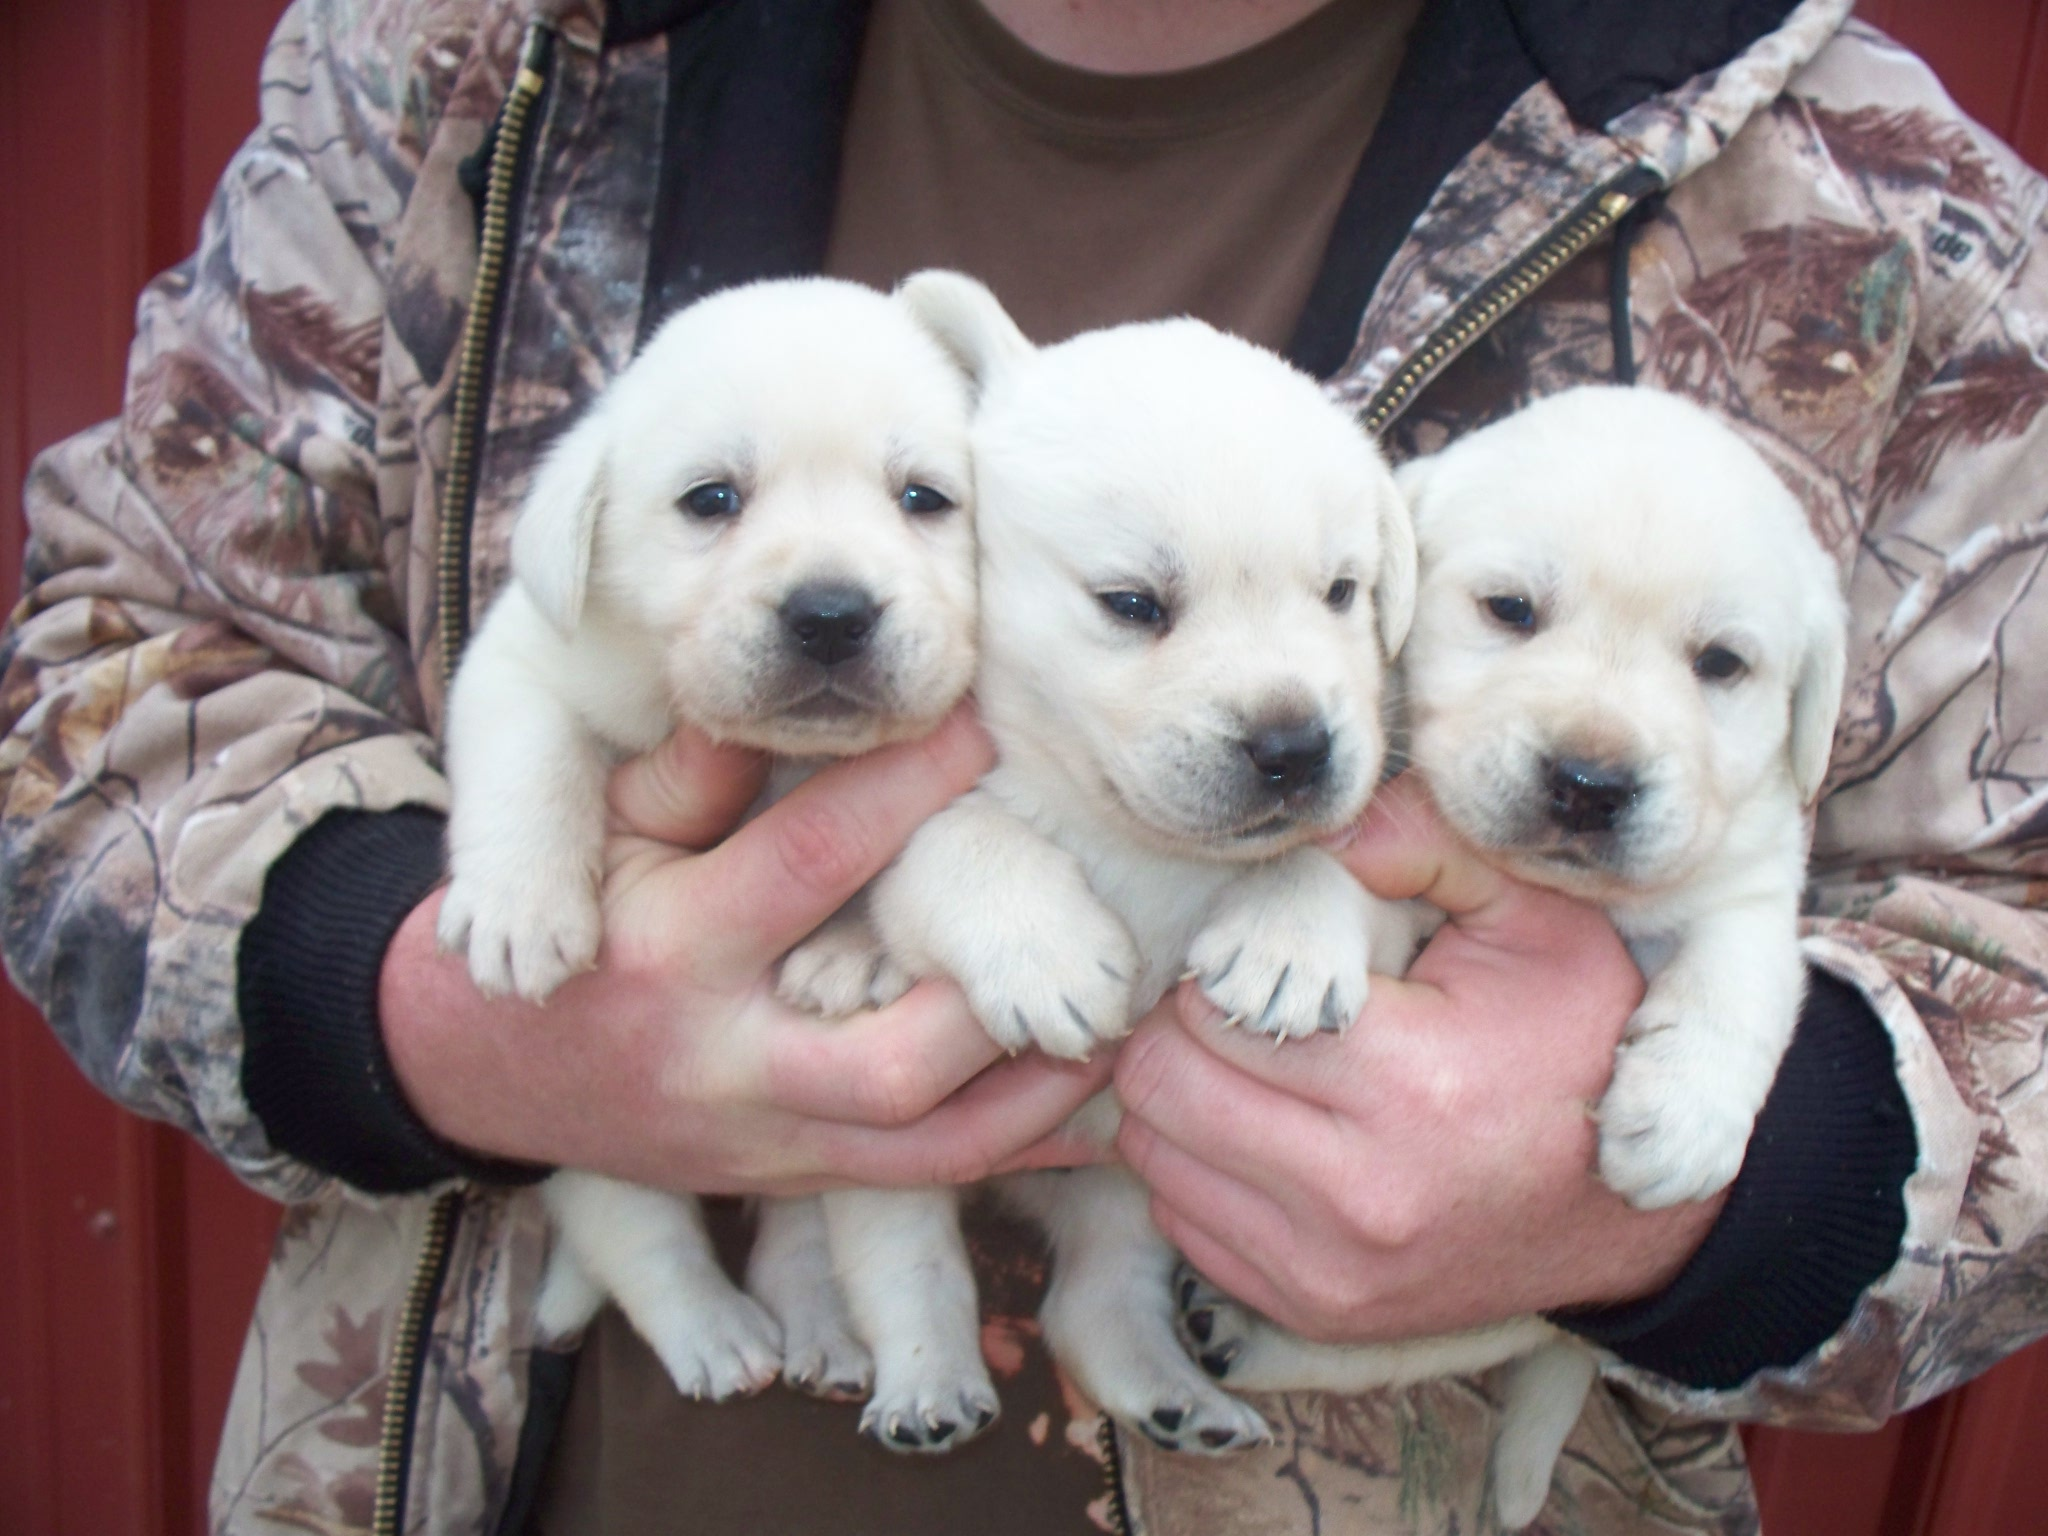 One of these sweet boys will be joining the CFR family in February